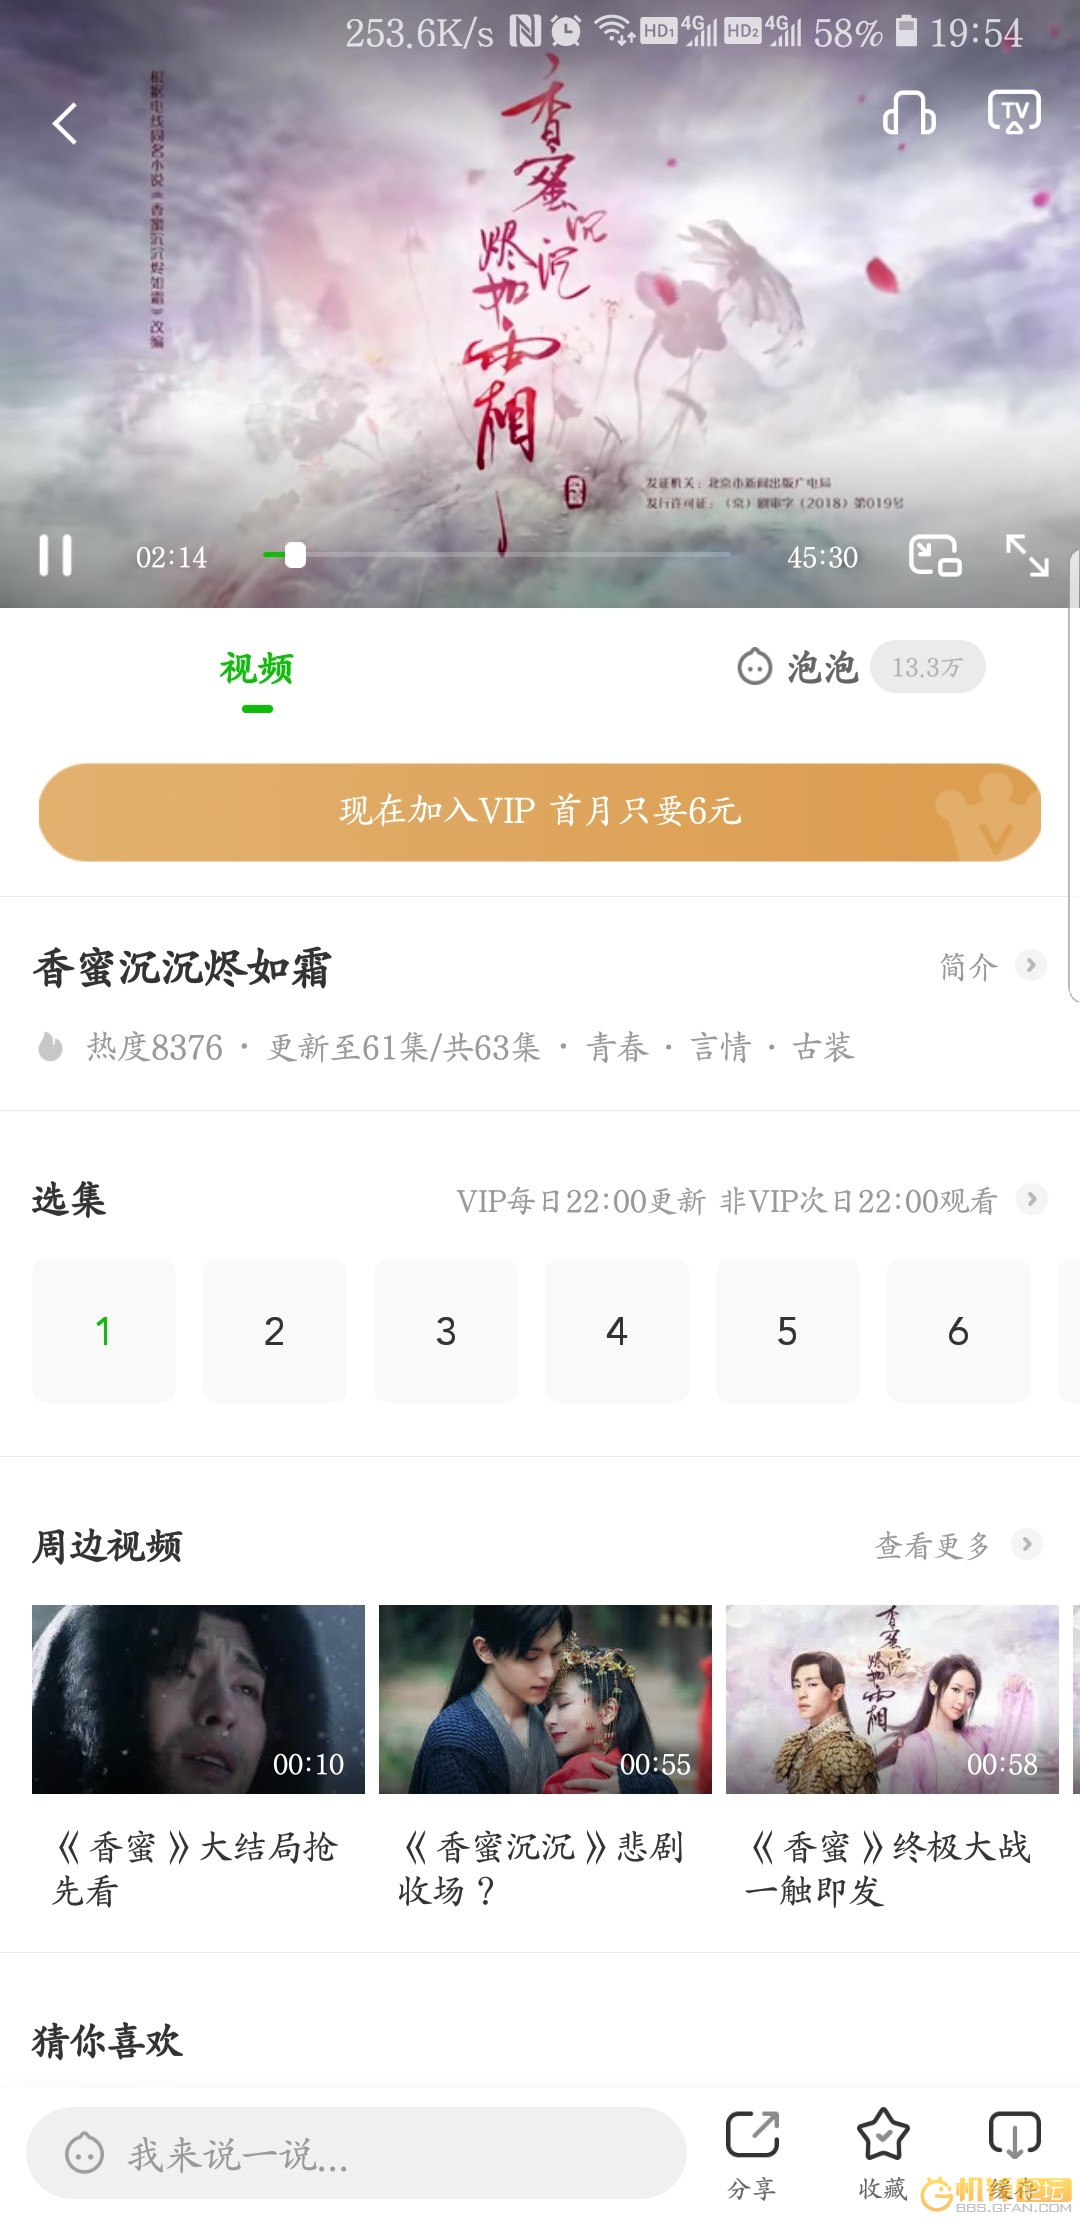 Screenshot_20180904-195414_iQIYI.jpg